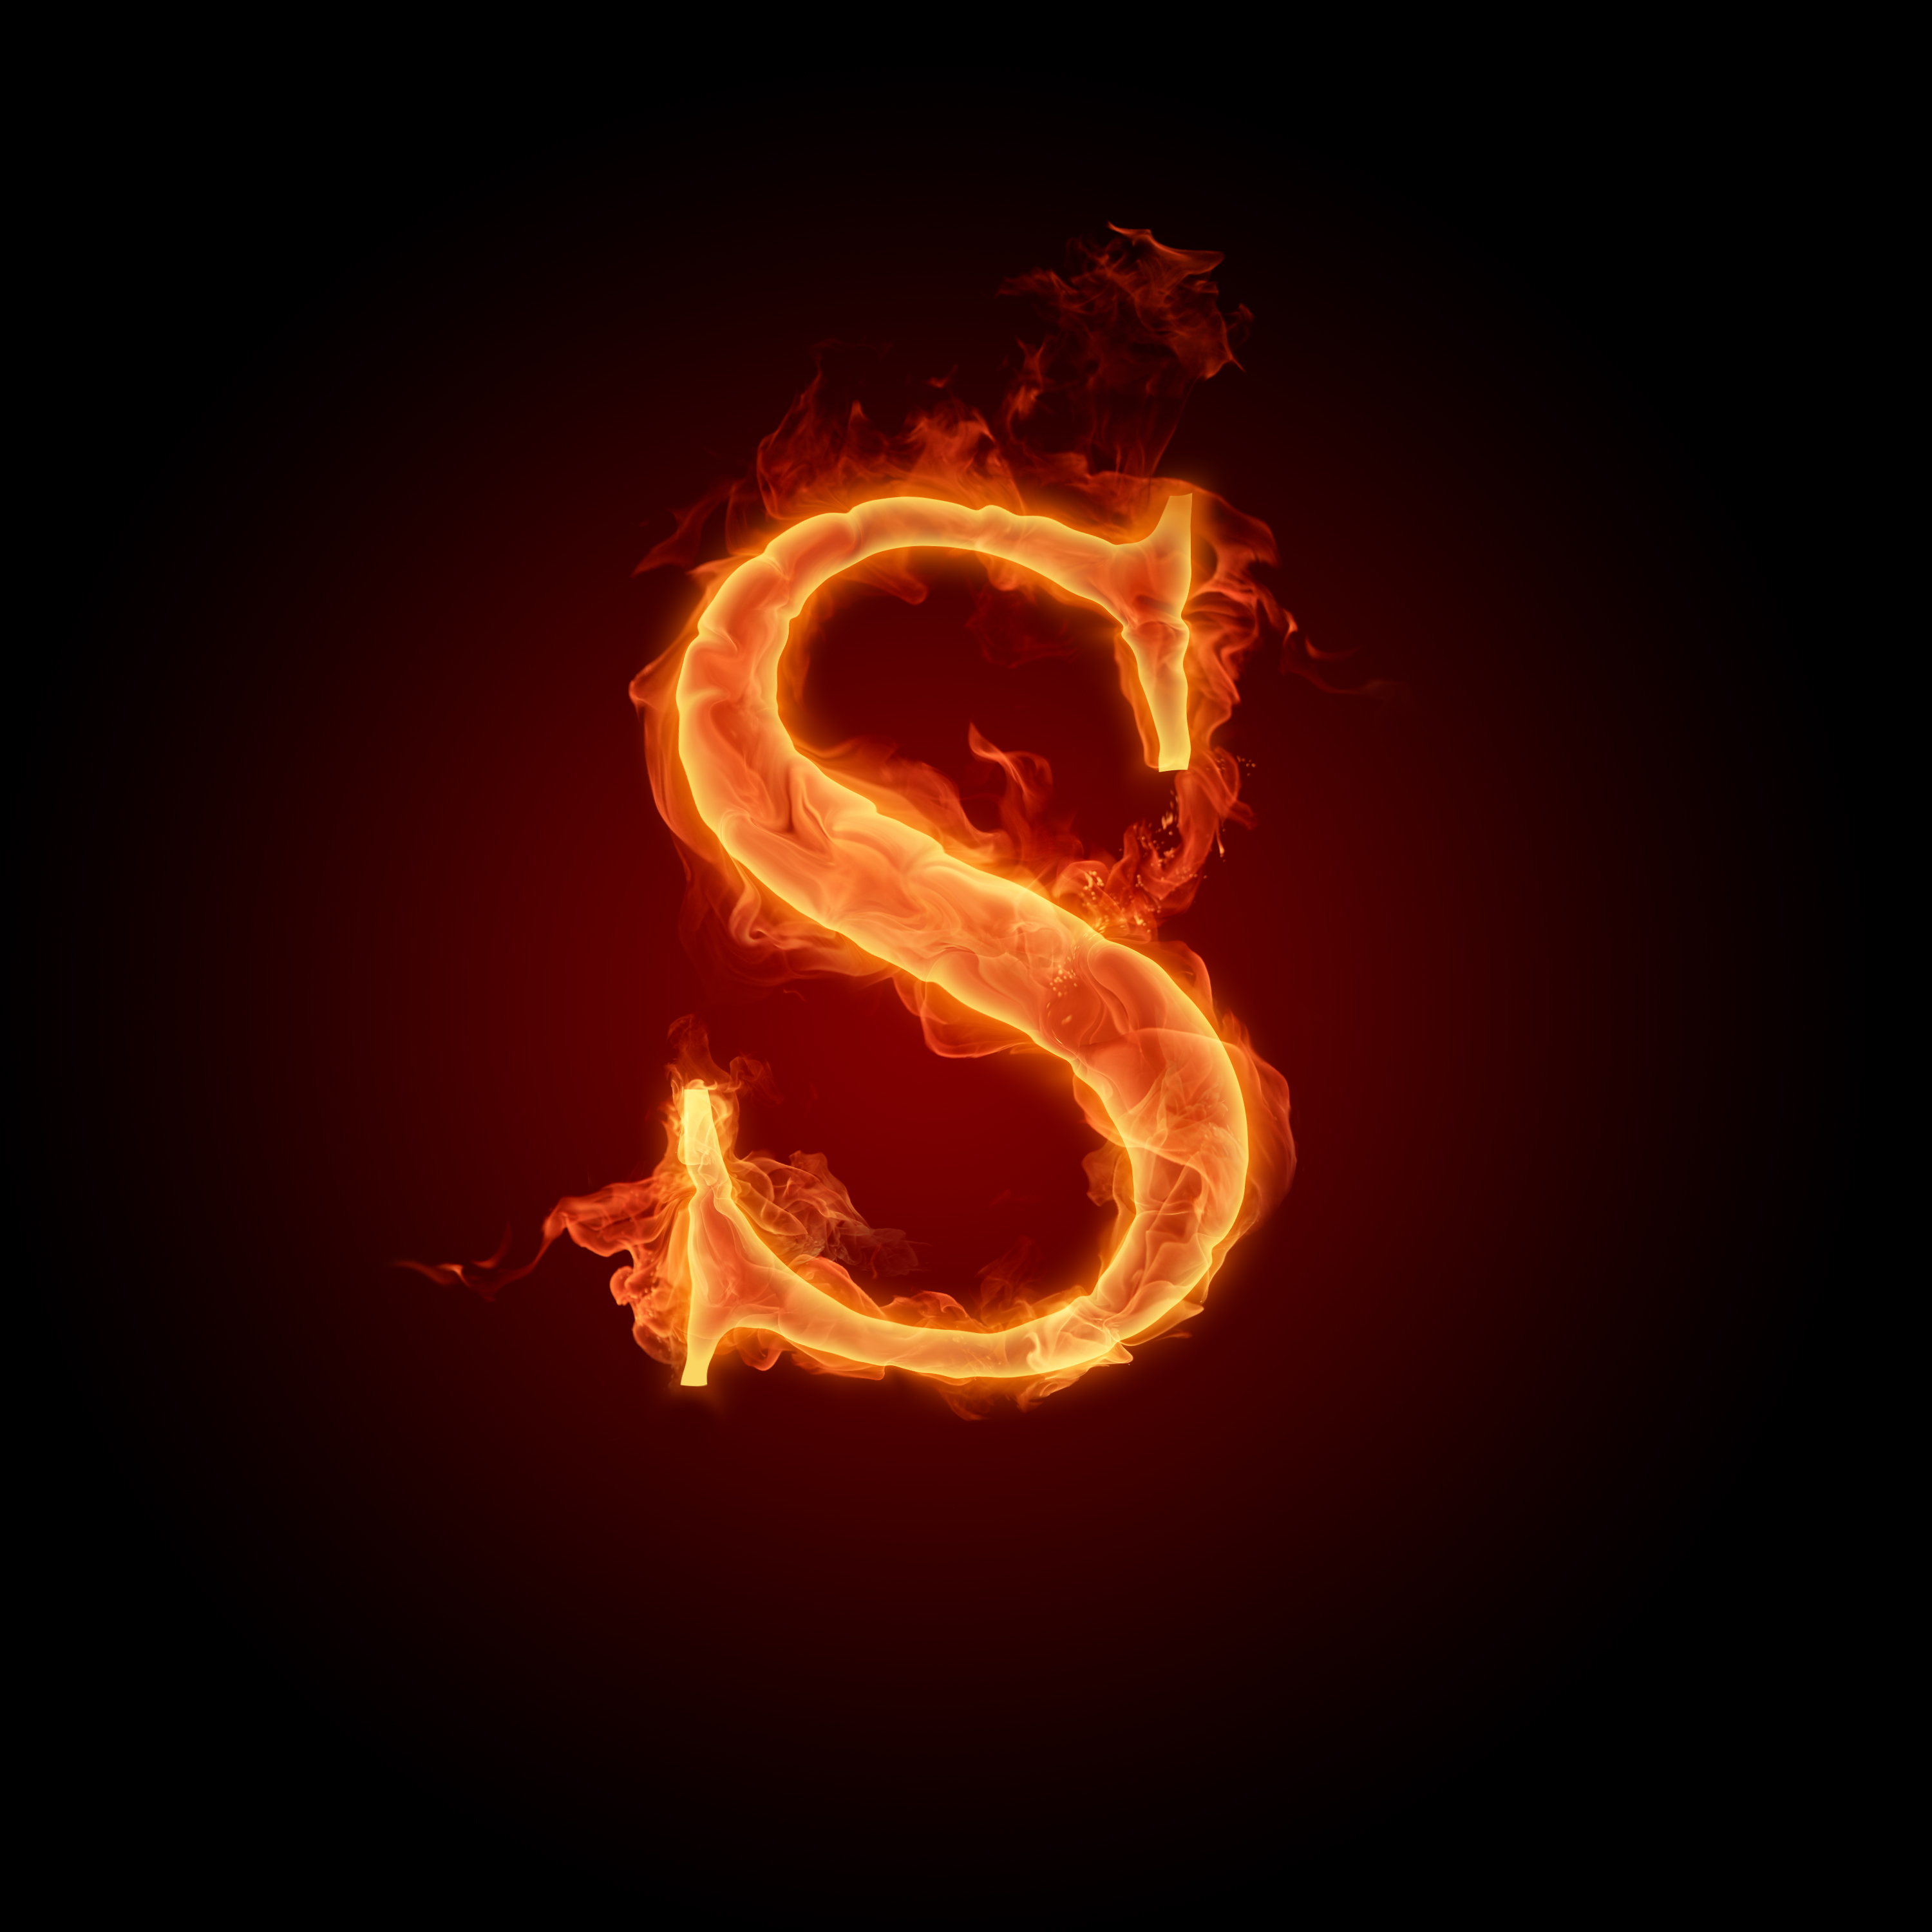 Flames fire typography alphabet letters free wallpaper flames fire typography alphabet letters free wallpaper wallpaperjam altavistaventures Images